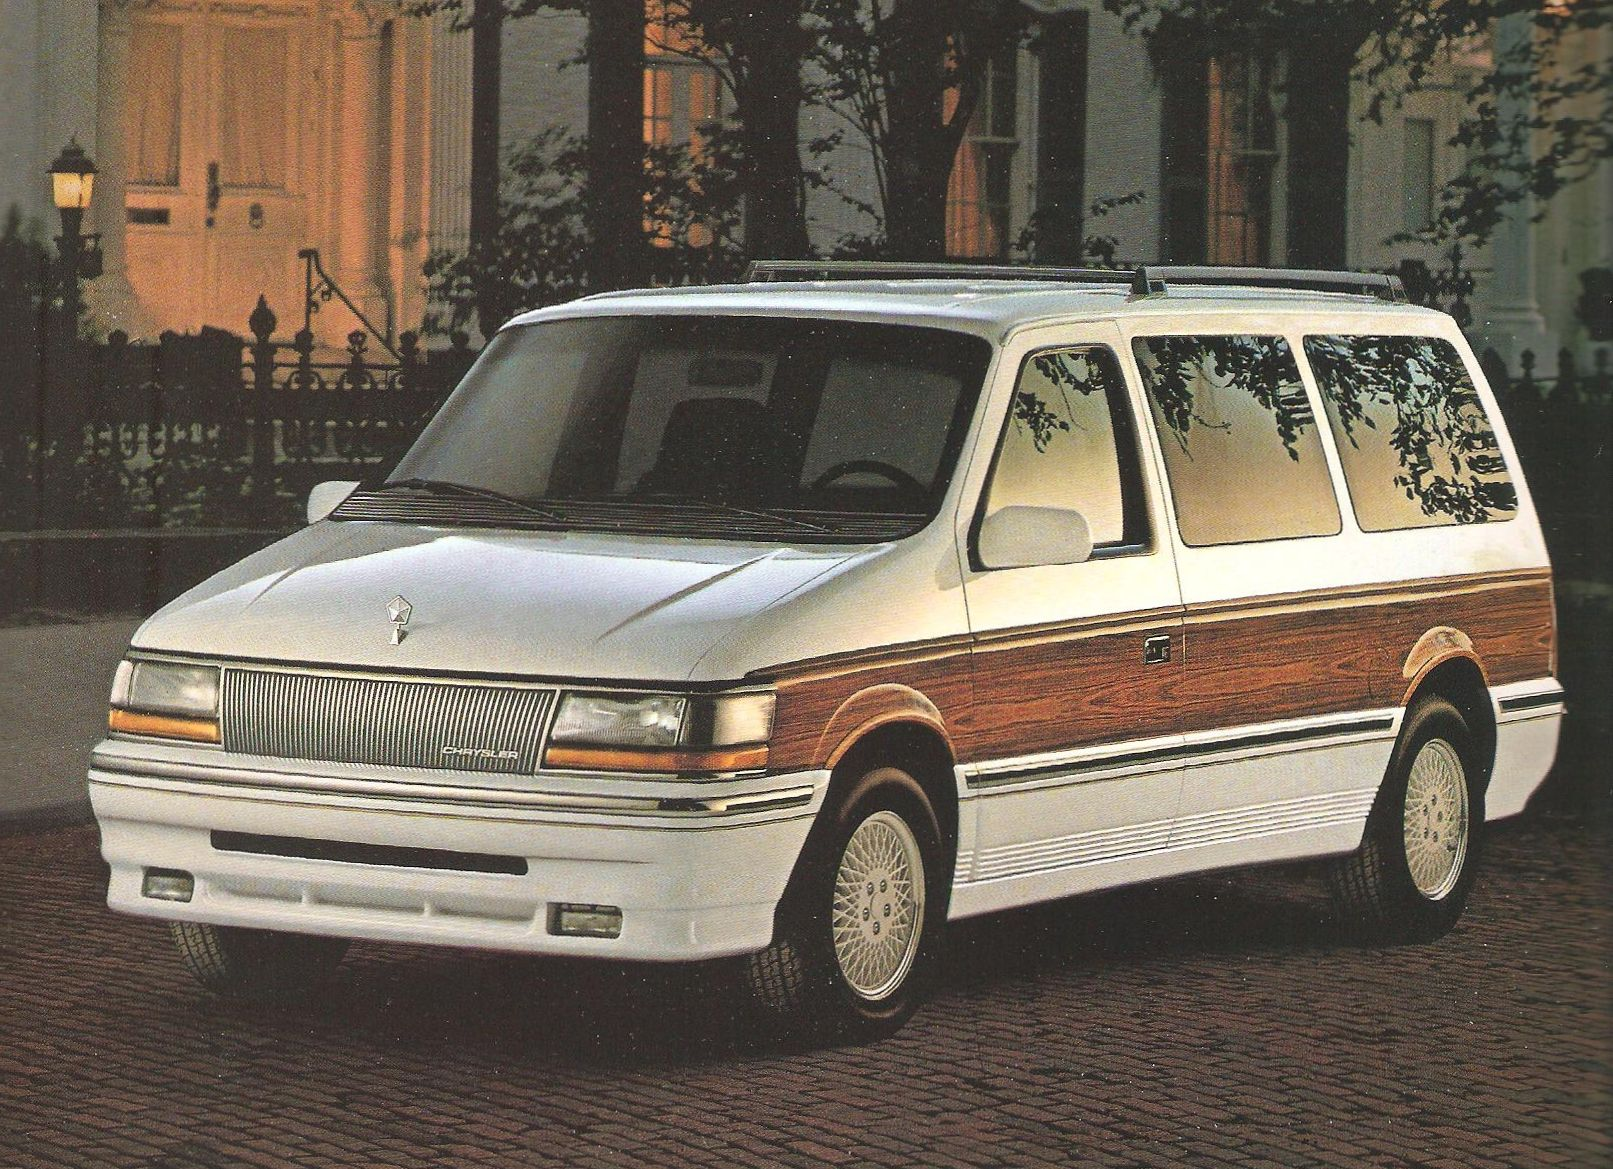 Chrysler Minivan 80s Google Search Chrysler Grand Caravan